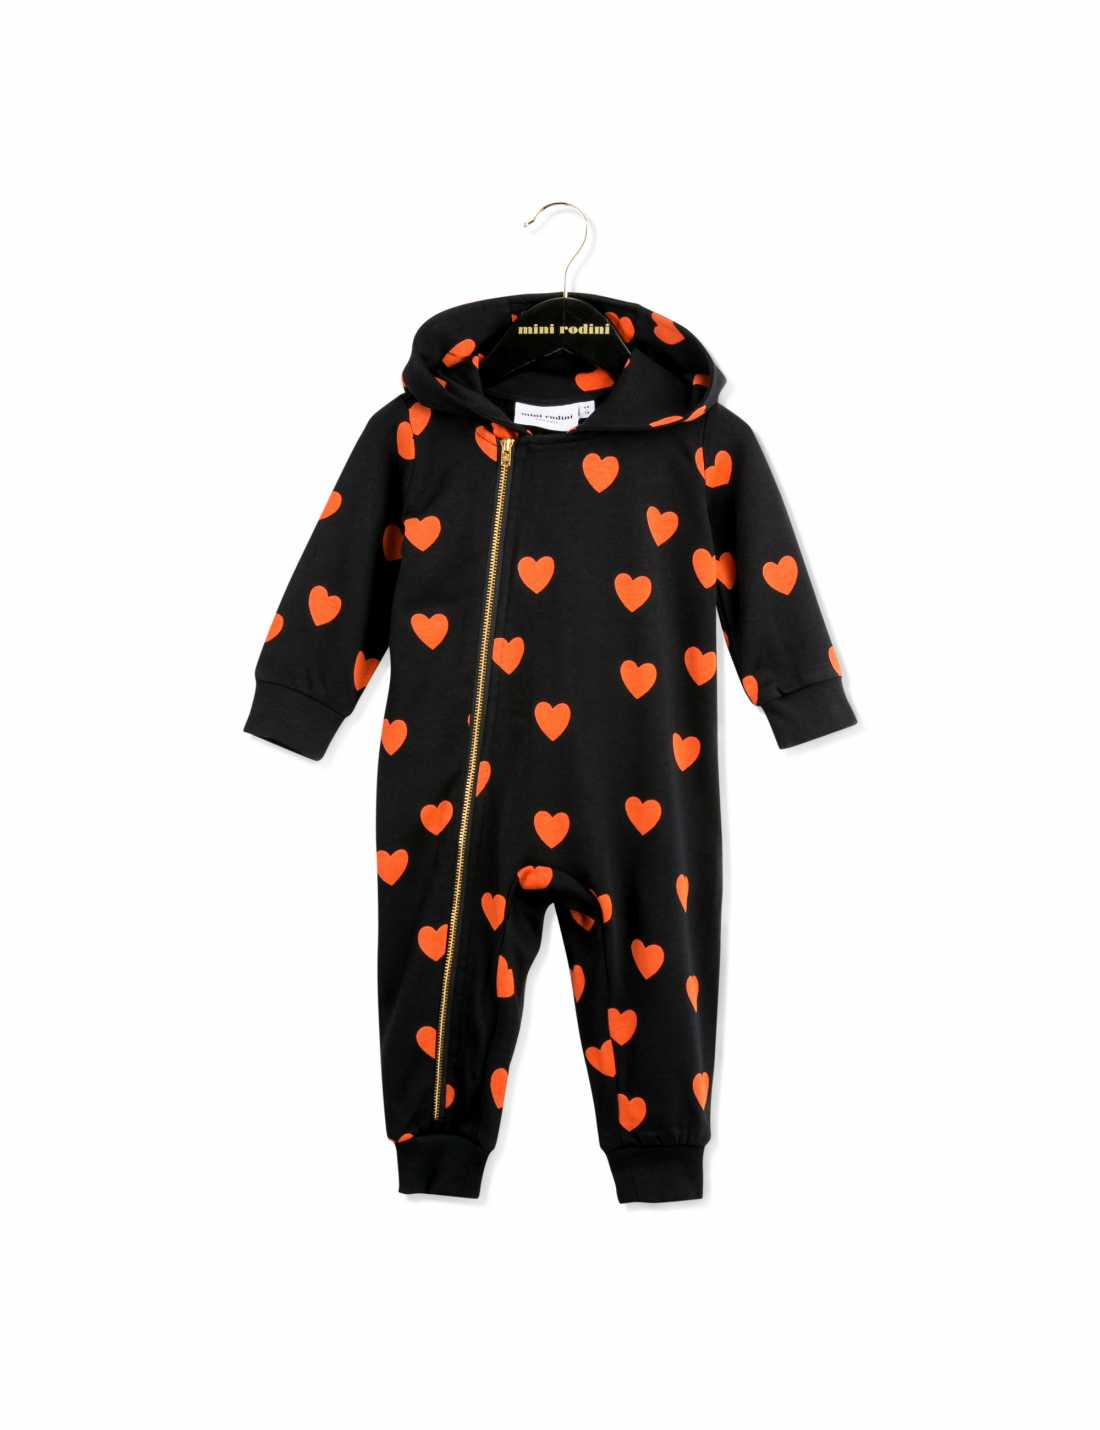 Hooded onesie in black with red hearts printed all over01